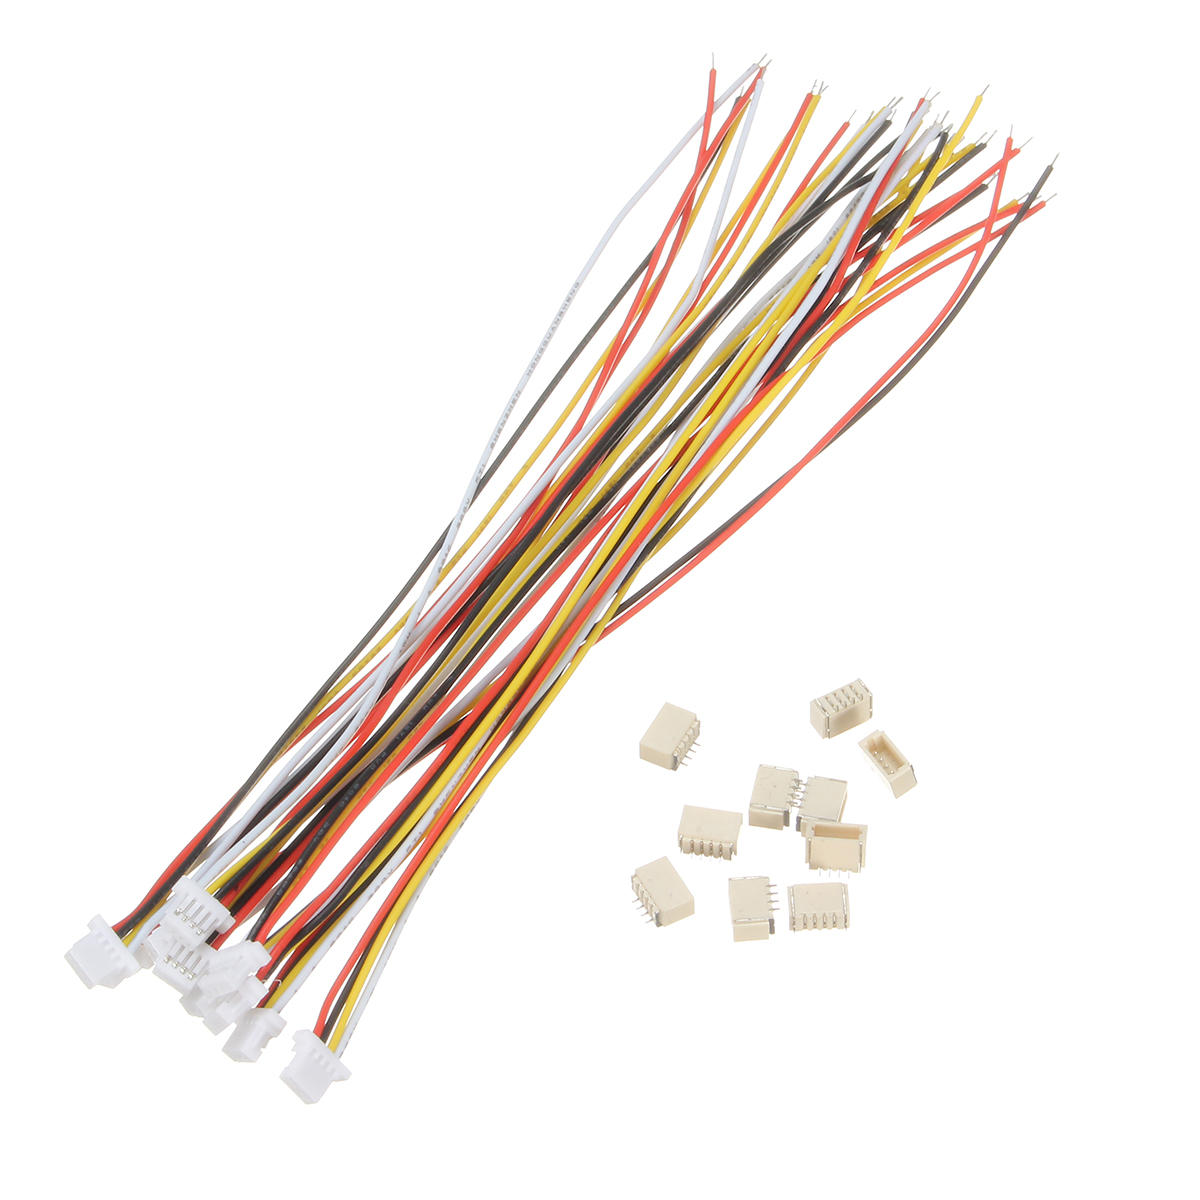 10 SETS Mini Micro SH 1.0 7-Pin JST Connector with Wires Cables